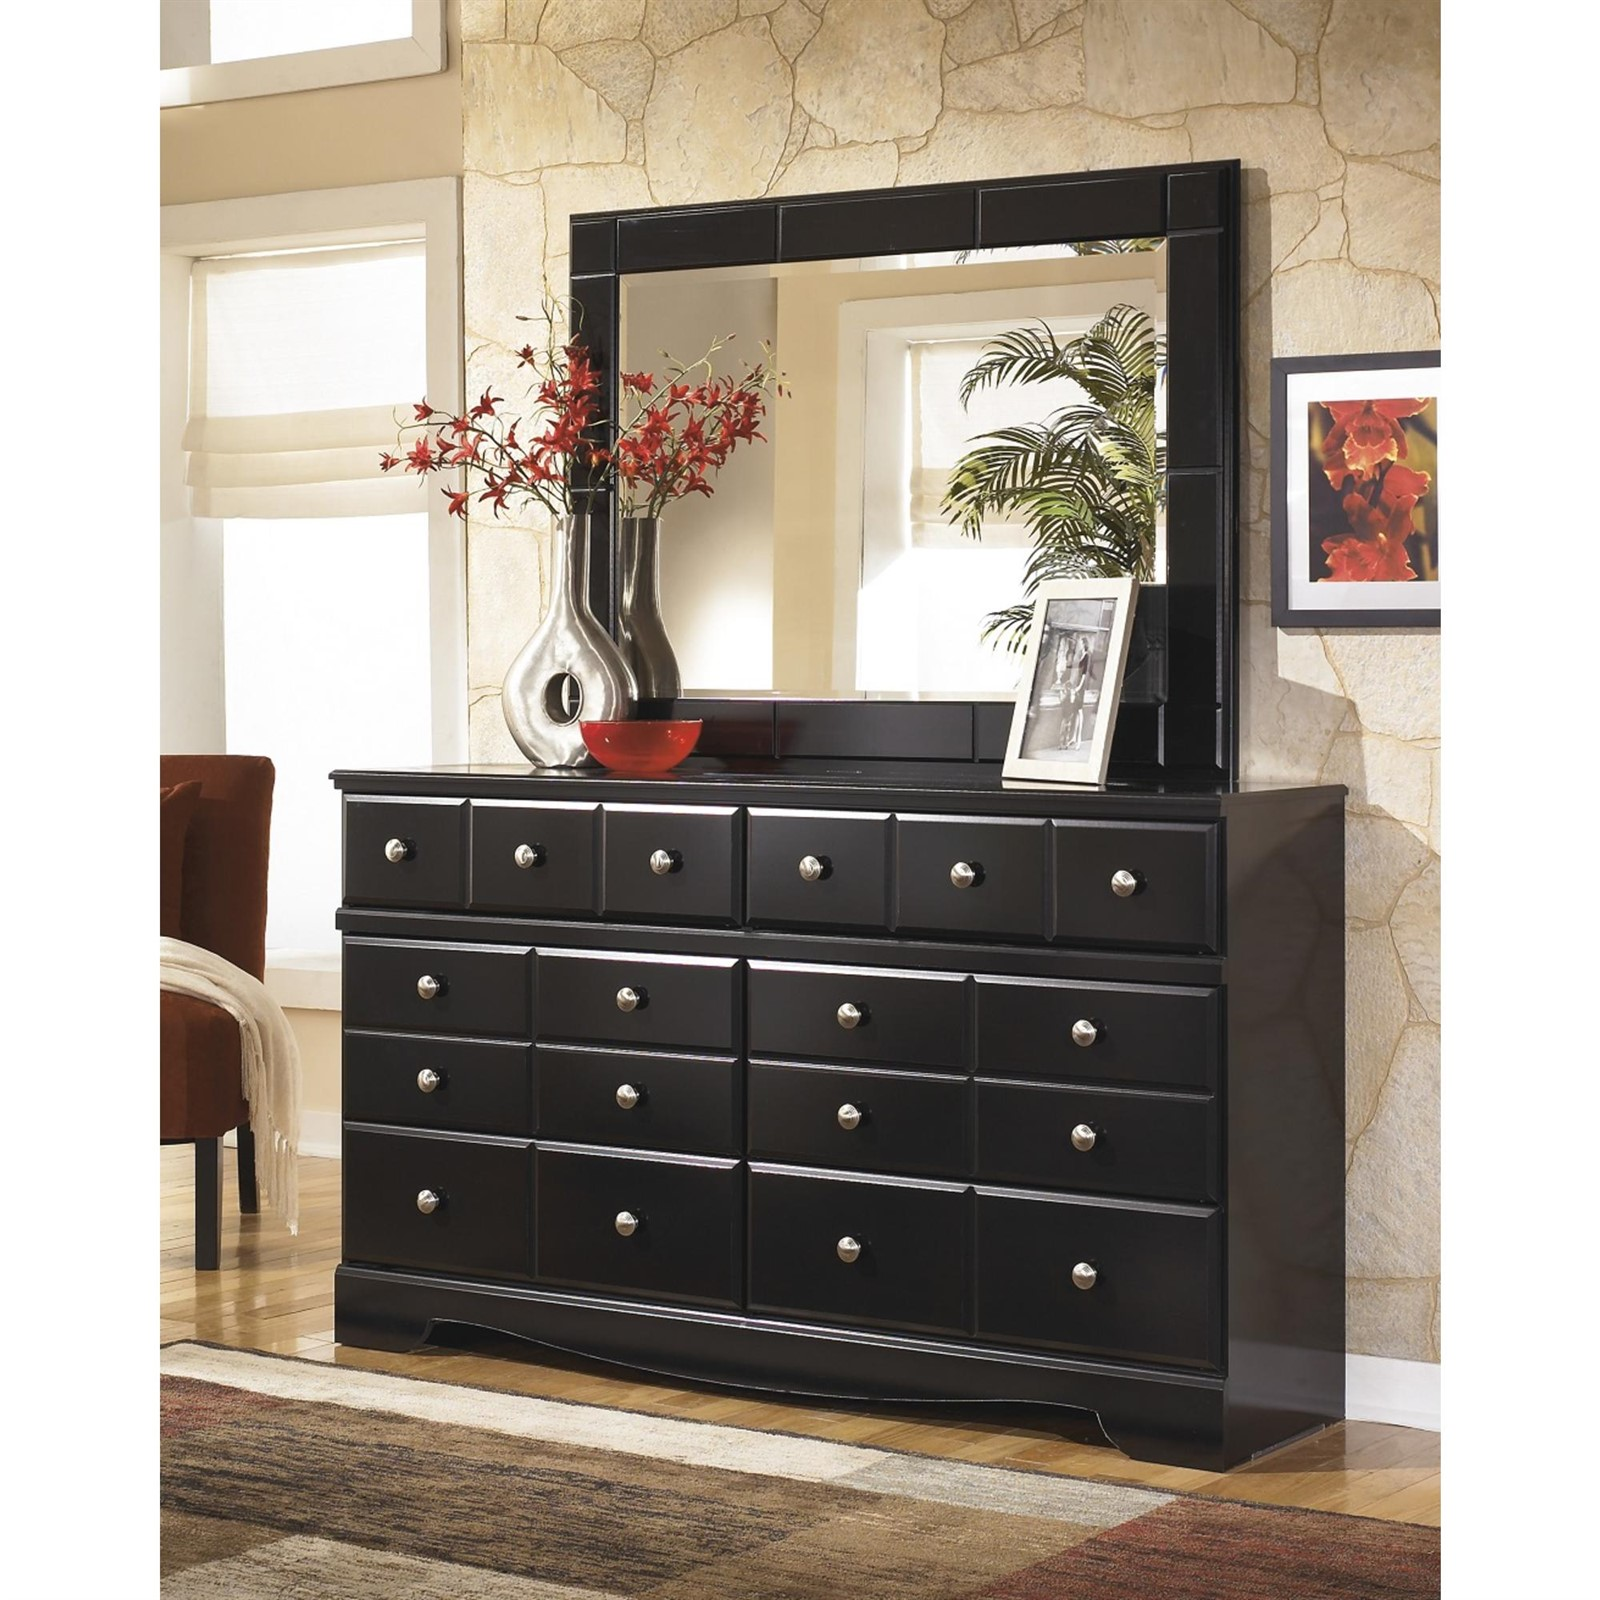 Signature Design by Ashley Shay Almost Black Dresser with Mirror